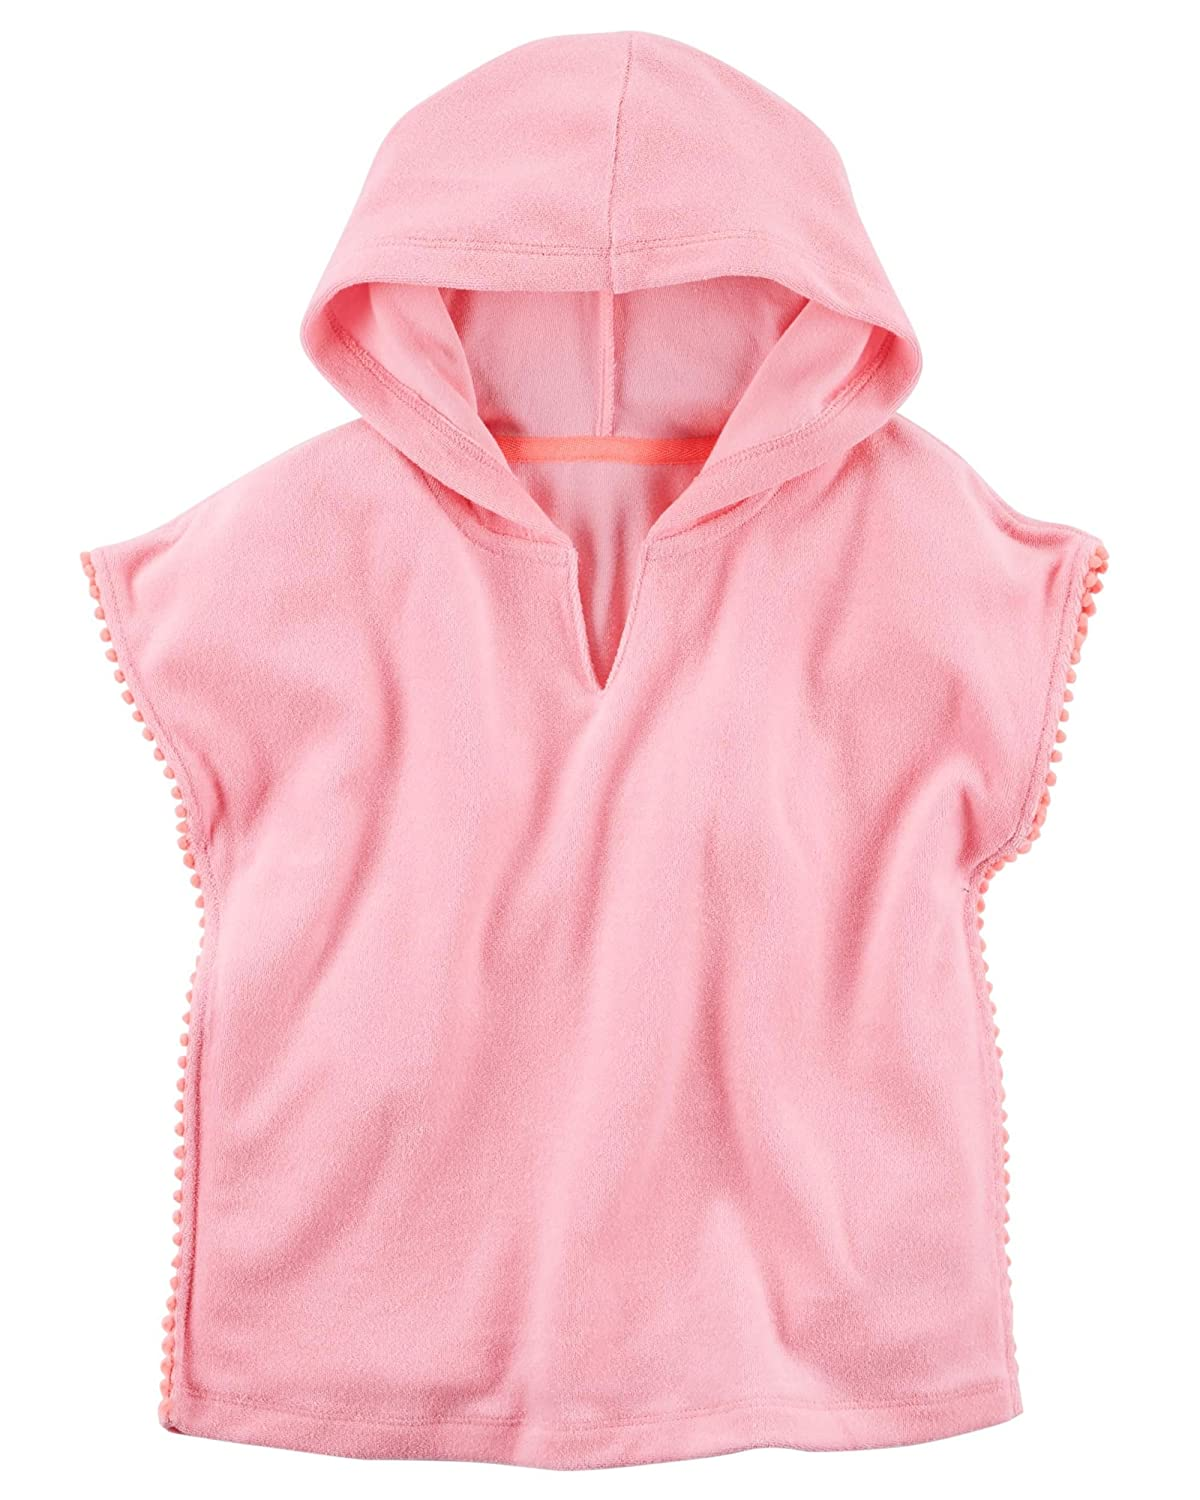 Carter's Baby Girls' Swim Cover-up, Pink Pink (6 Months)